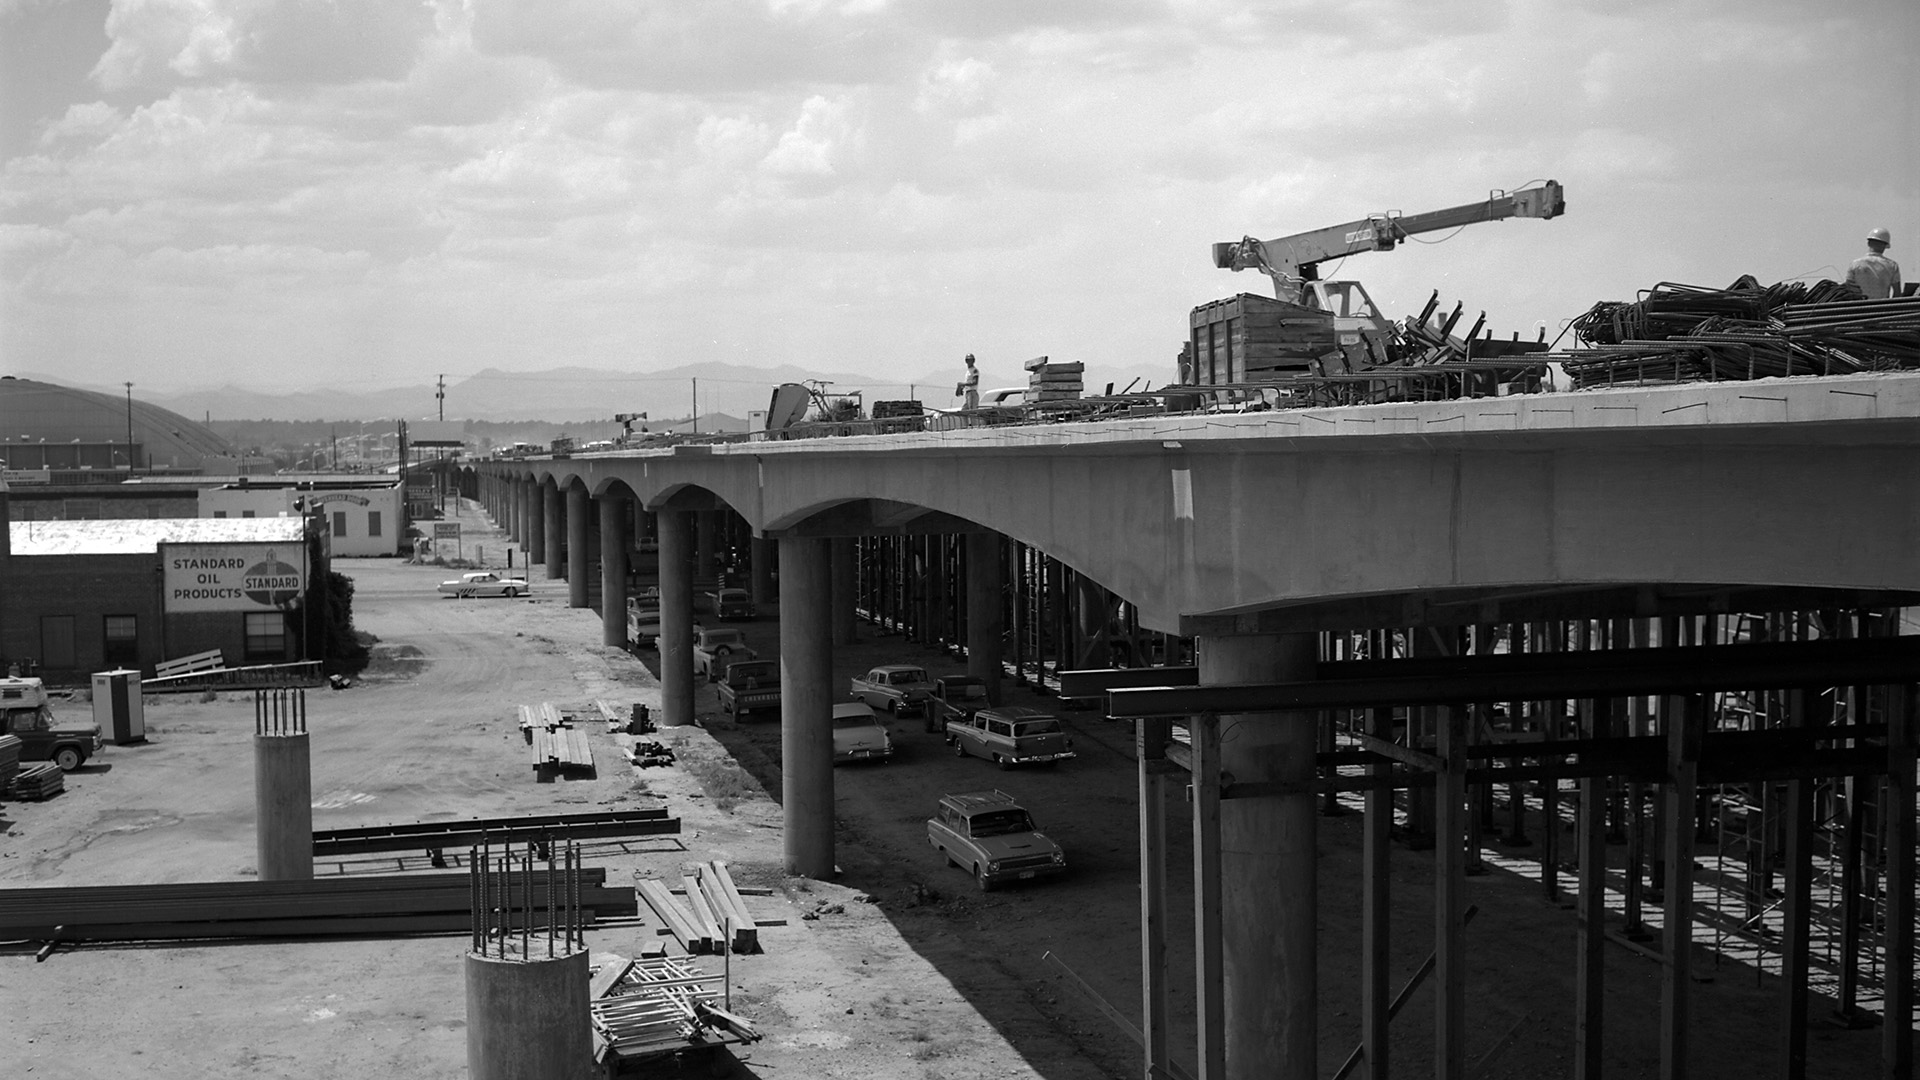 Construction of Interstate 70 in Denver, looking west towards the mountains - circa 1964 (Image courtesy CDOT)